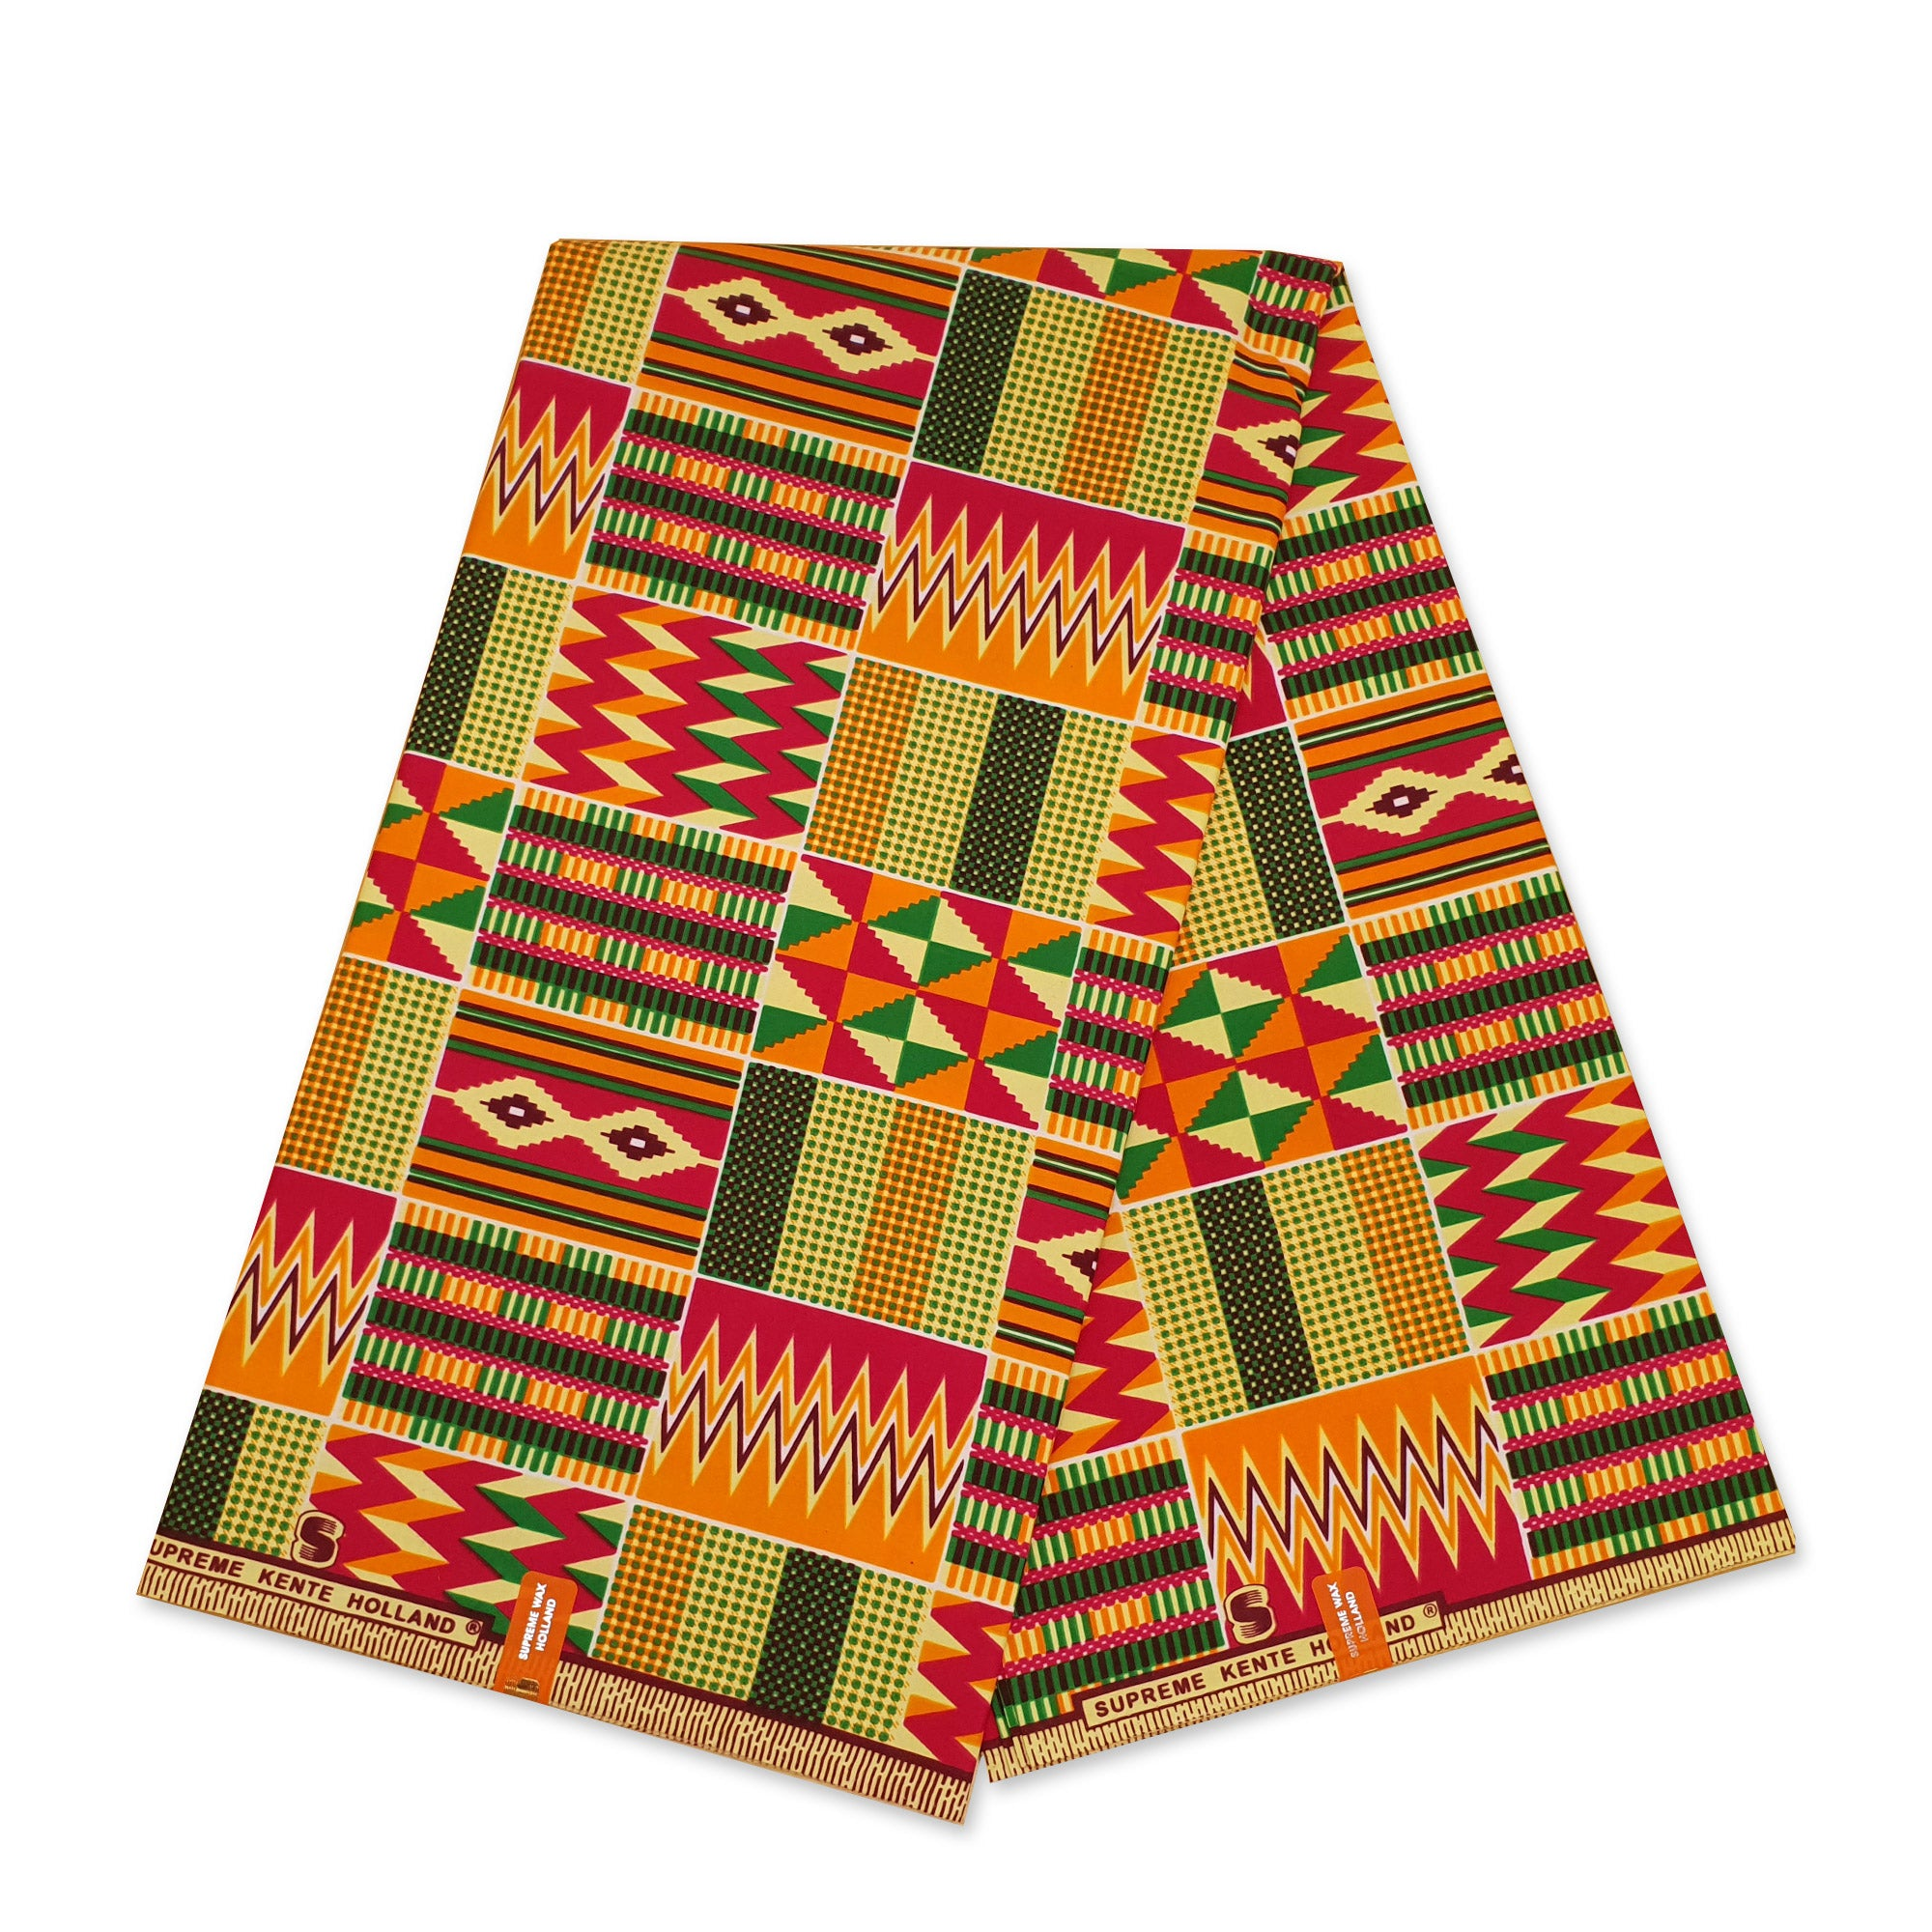 African Orange Kente print fabric KENTE Ghana wax cloth SKE2008